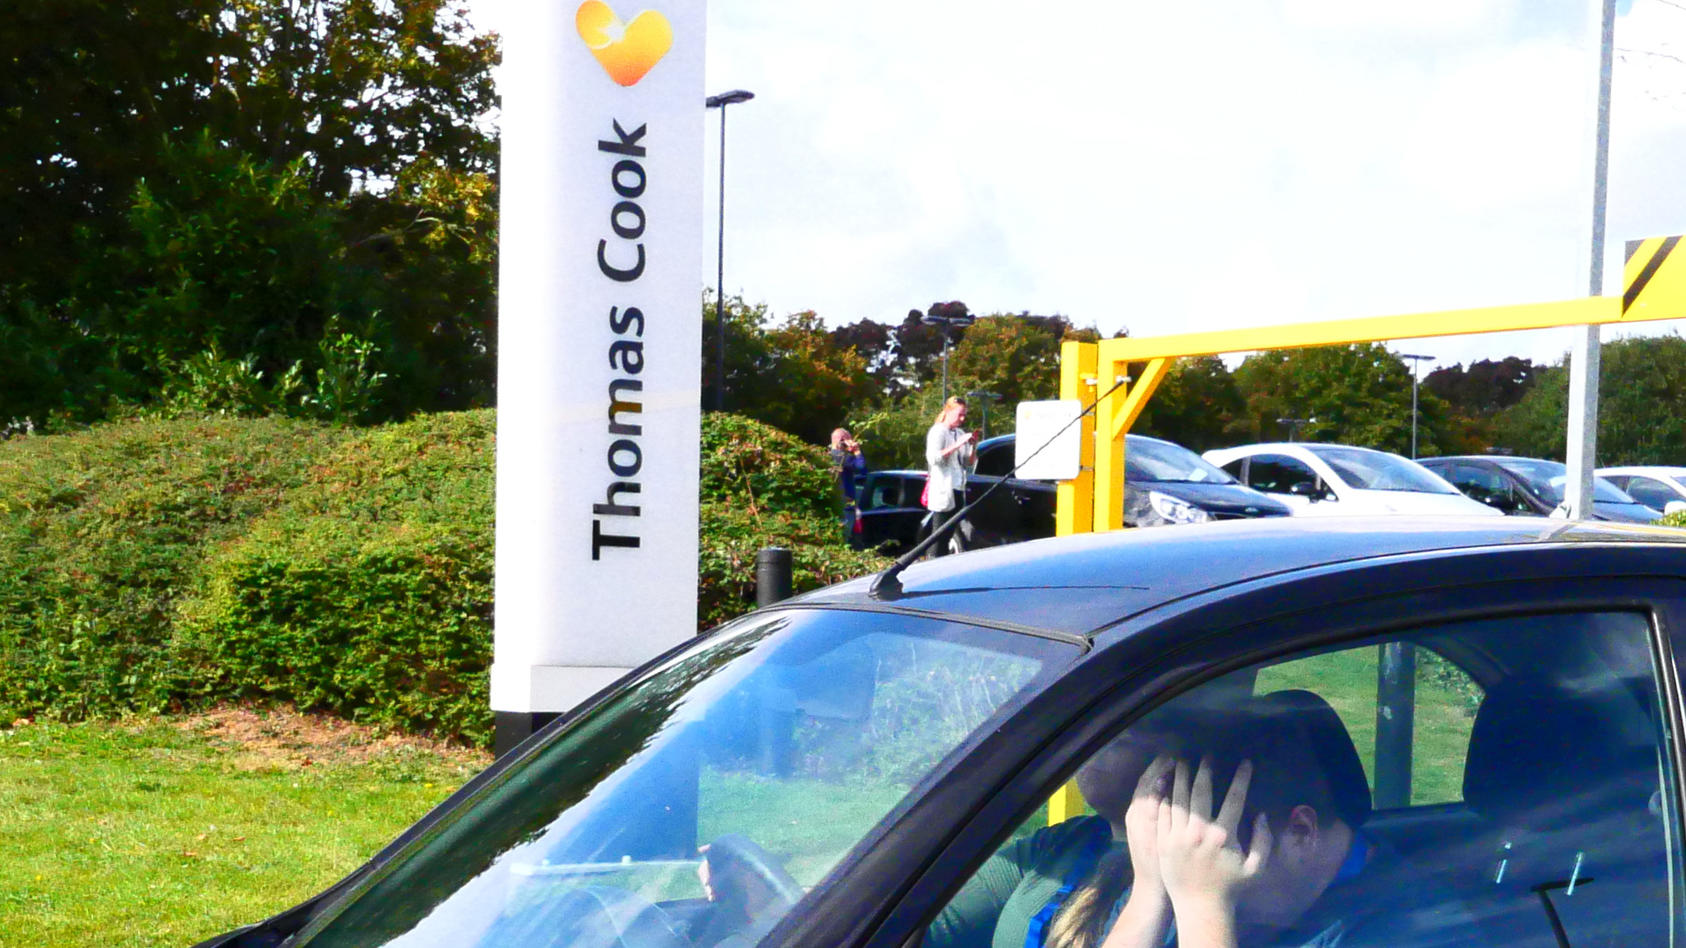 Thomas Cook headquarters, Peterborough, Cambridgeshire, UK on September 23, 2019, the day that Thomas Cook travel firm collapsed.